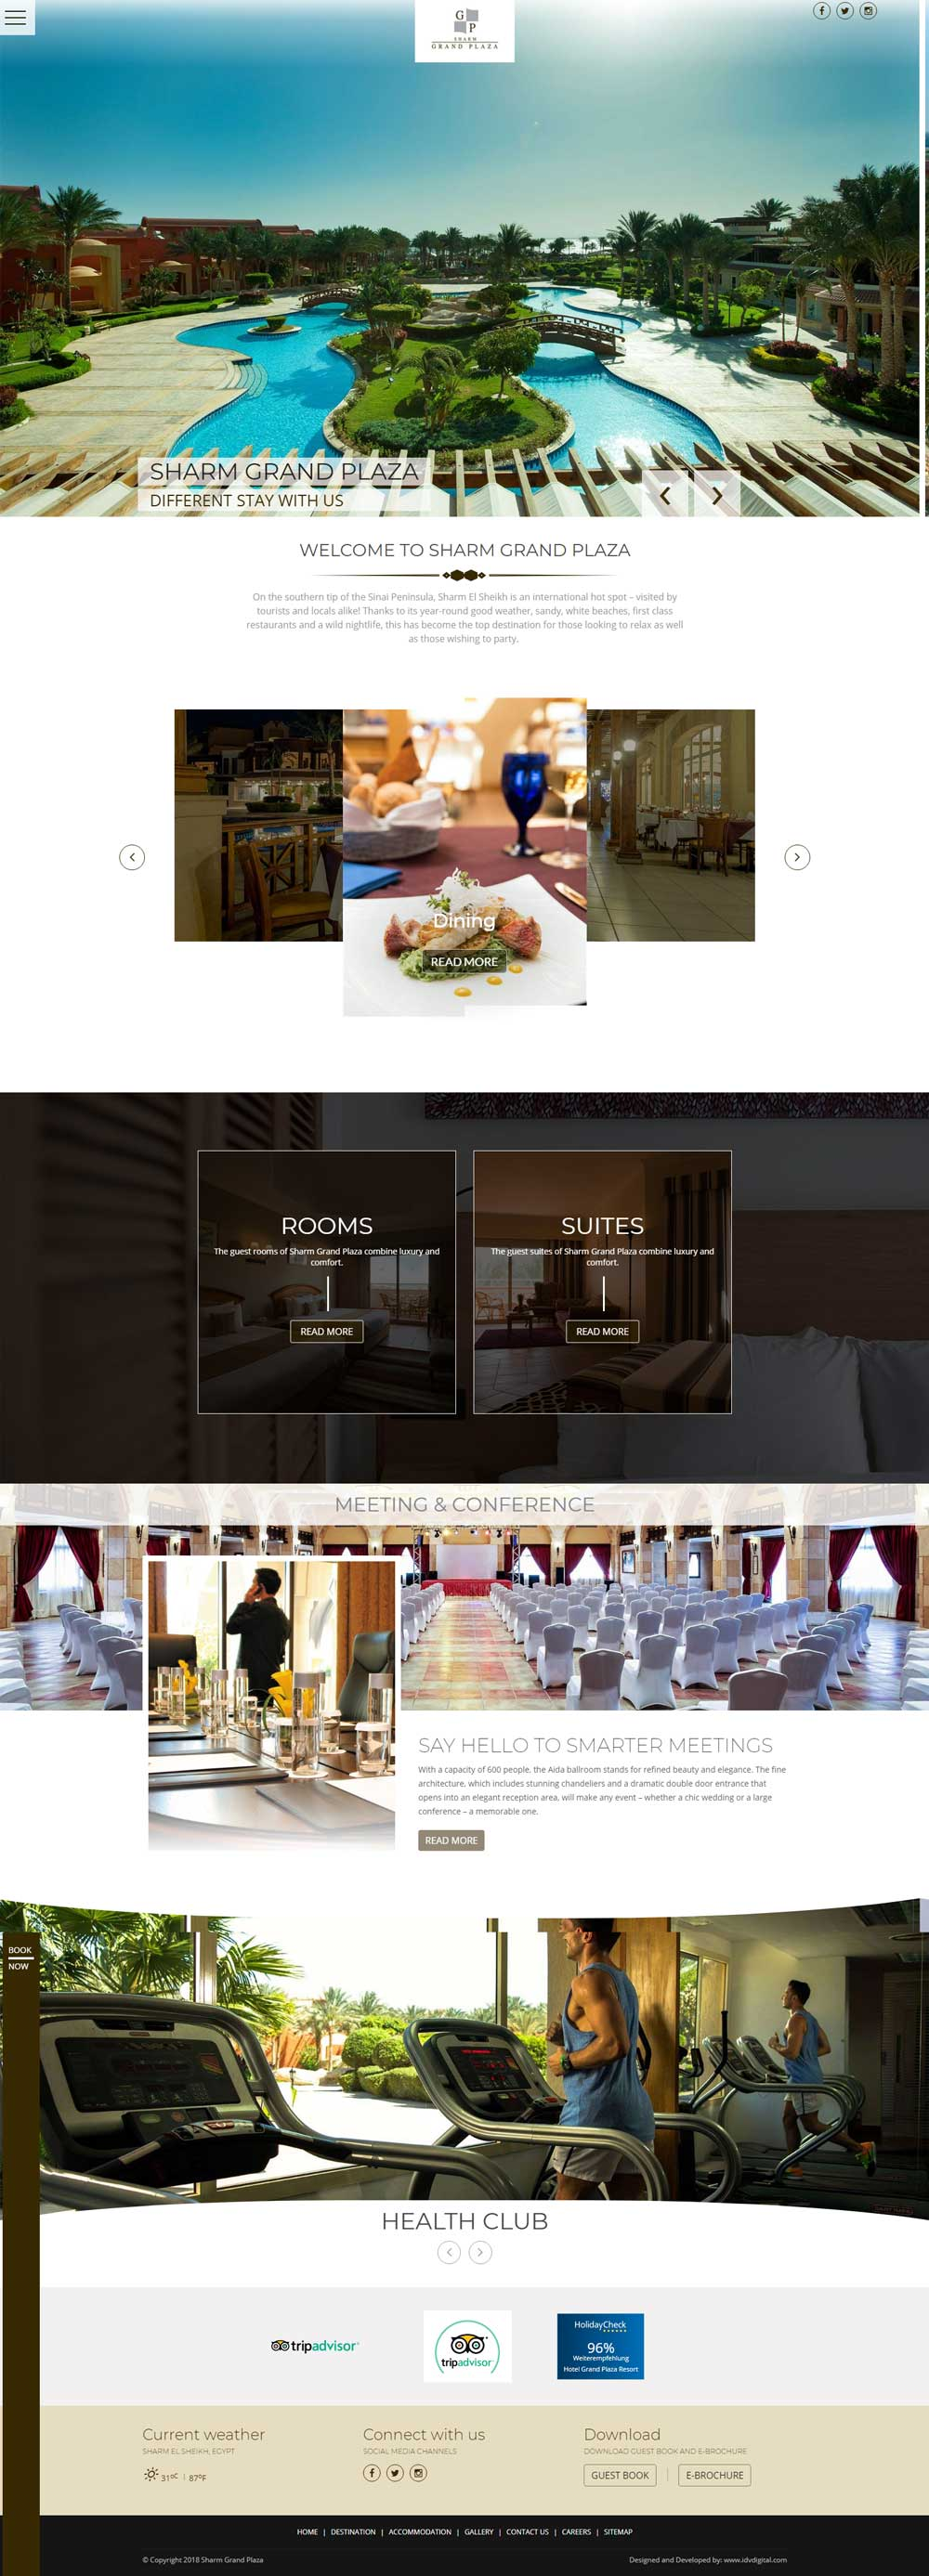 Sharm Grand Plaza - web development